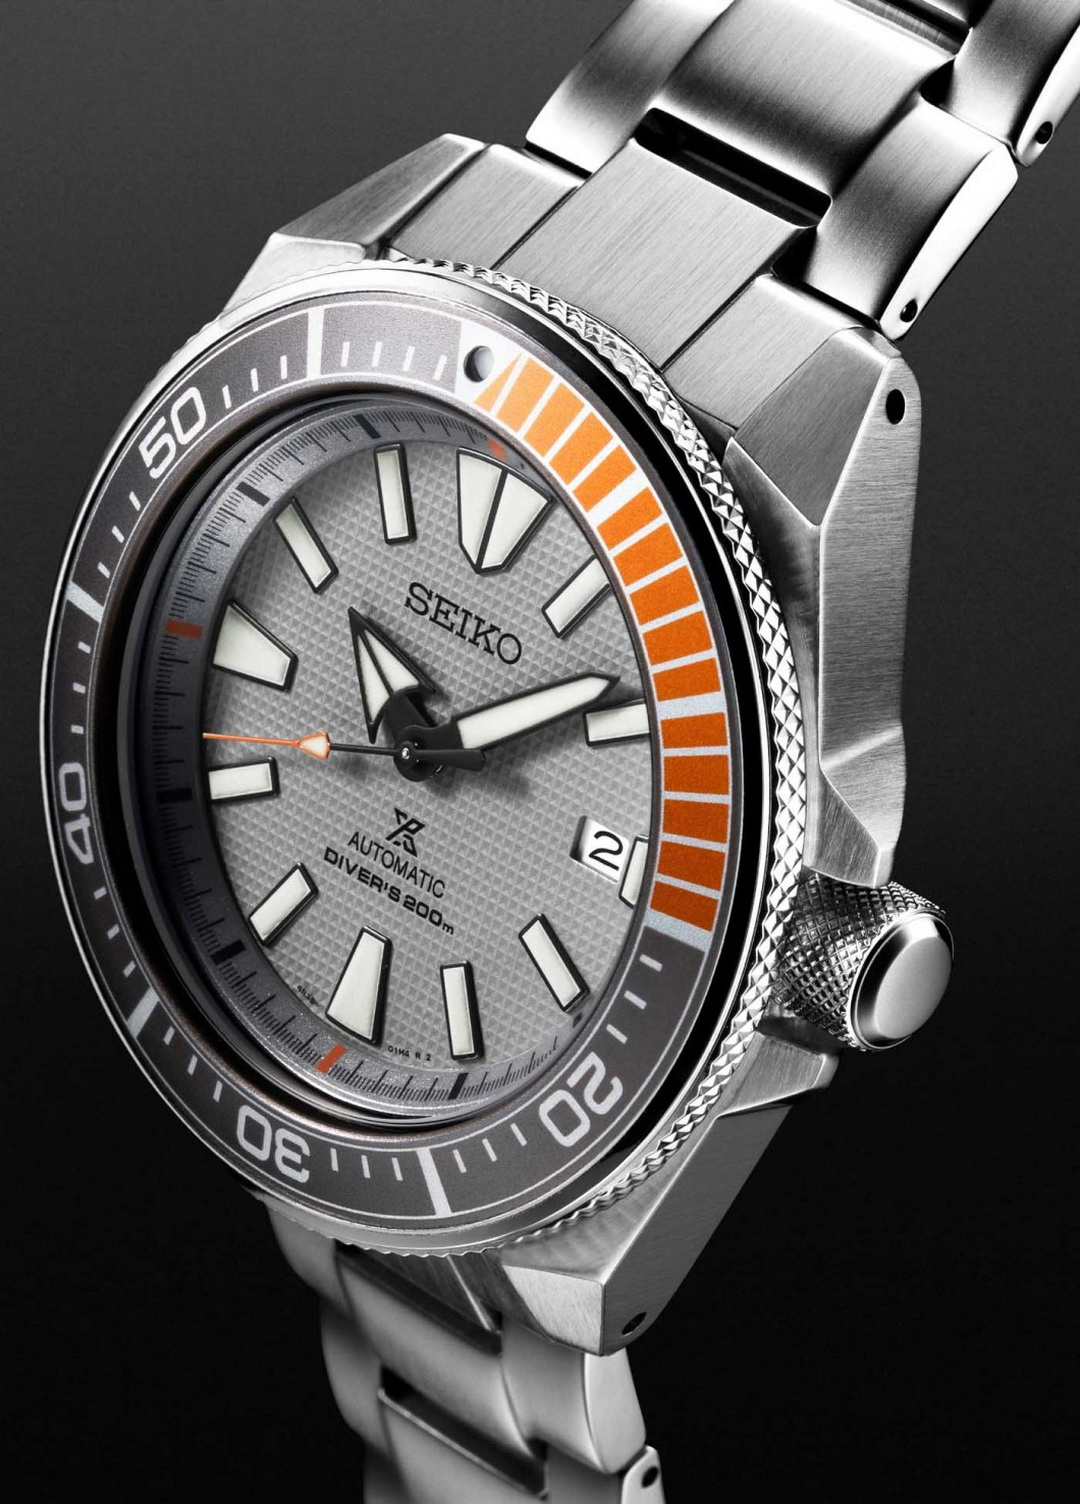 Seiko's new Prospex Dawn Grey Samurai and Turtle SEIKO%2BProspex%2BDAWN%2BGREY%2BSamurai%2BSRPD03K1%2B02